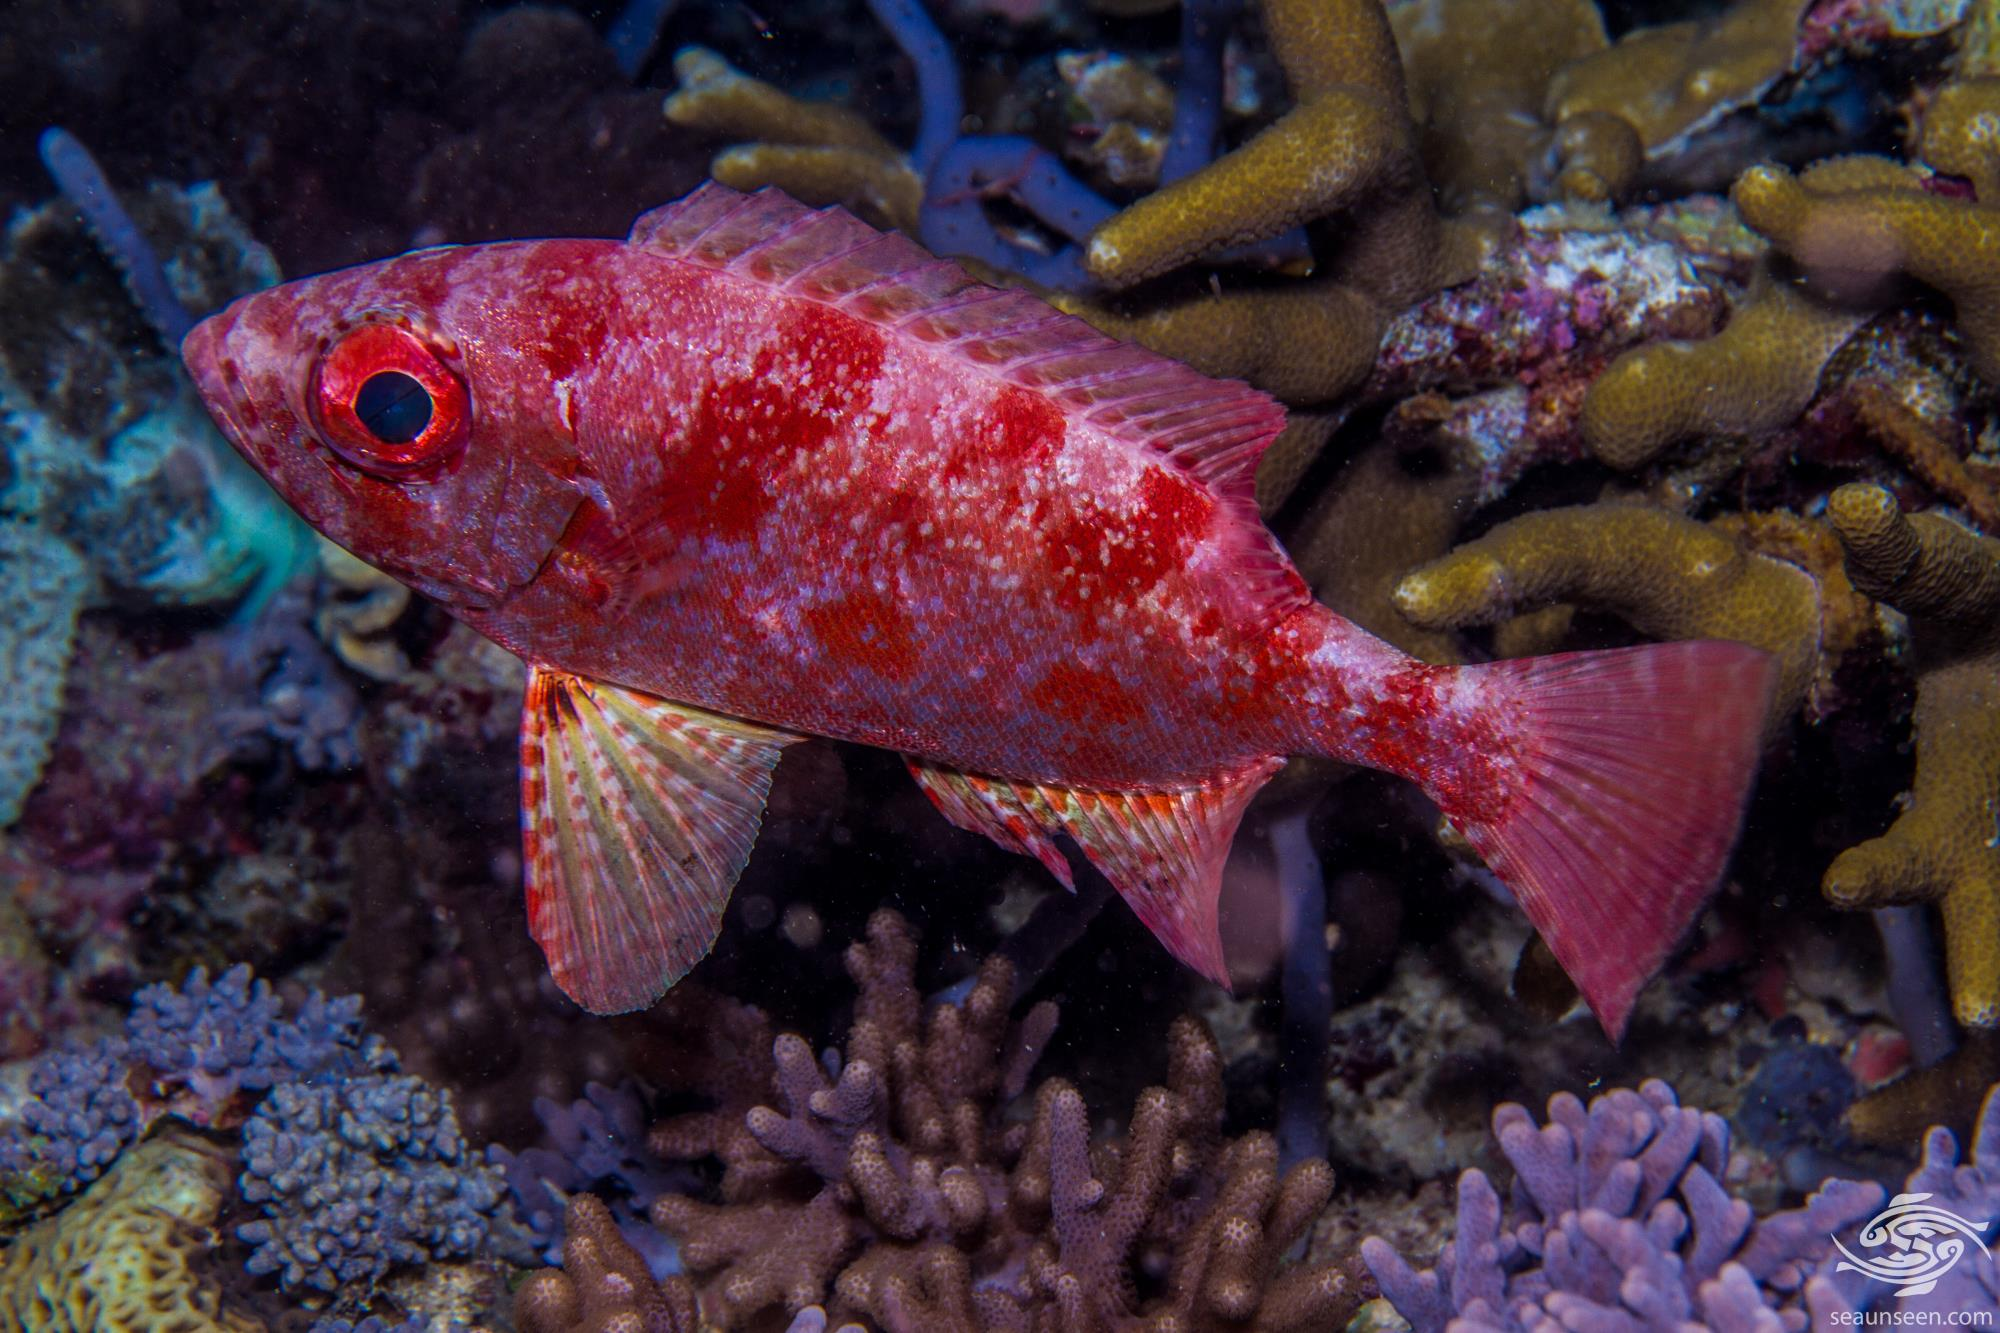 Crescent Tail Bigeye Priacanthus hamrur, is also known as the Lunar-tailed bigeye, Goggle eye, or Moontail bulls eye